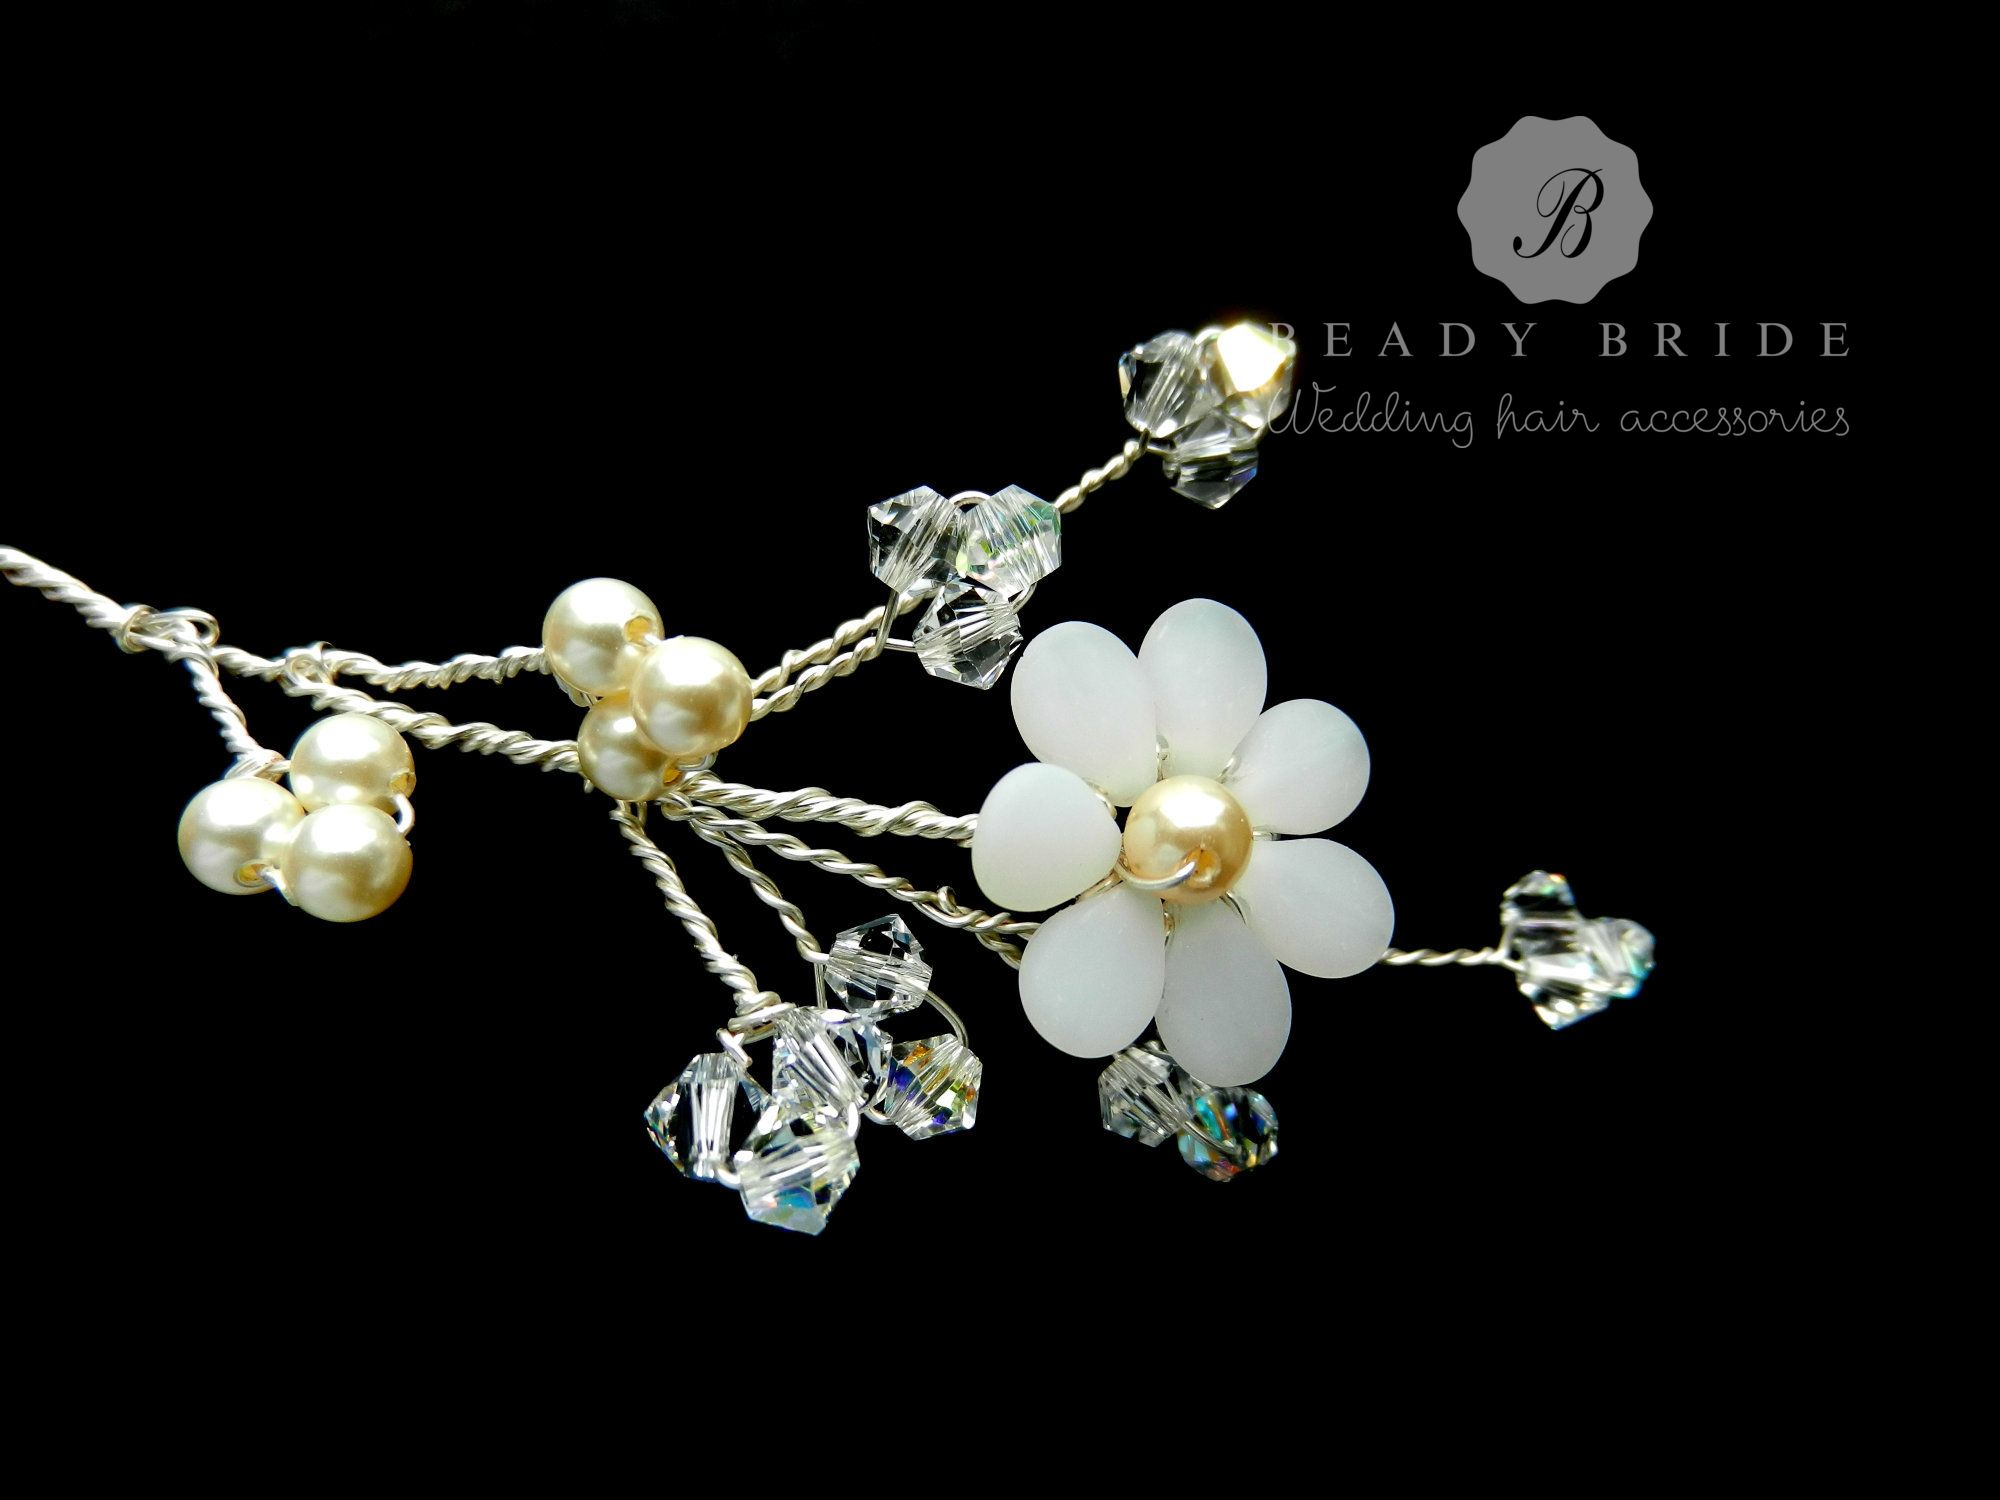 Lorraine-wedding-hair-pin-accessory-by Beady Bride-UK  (4)